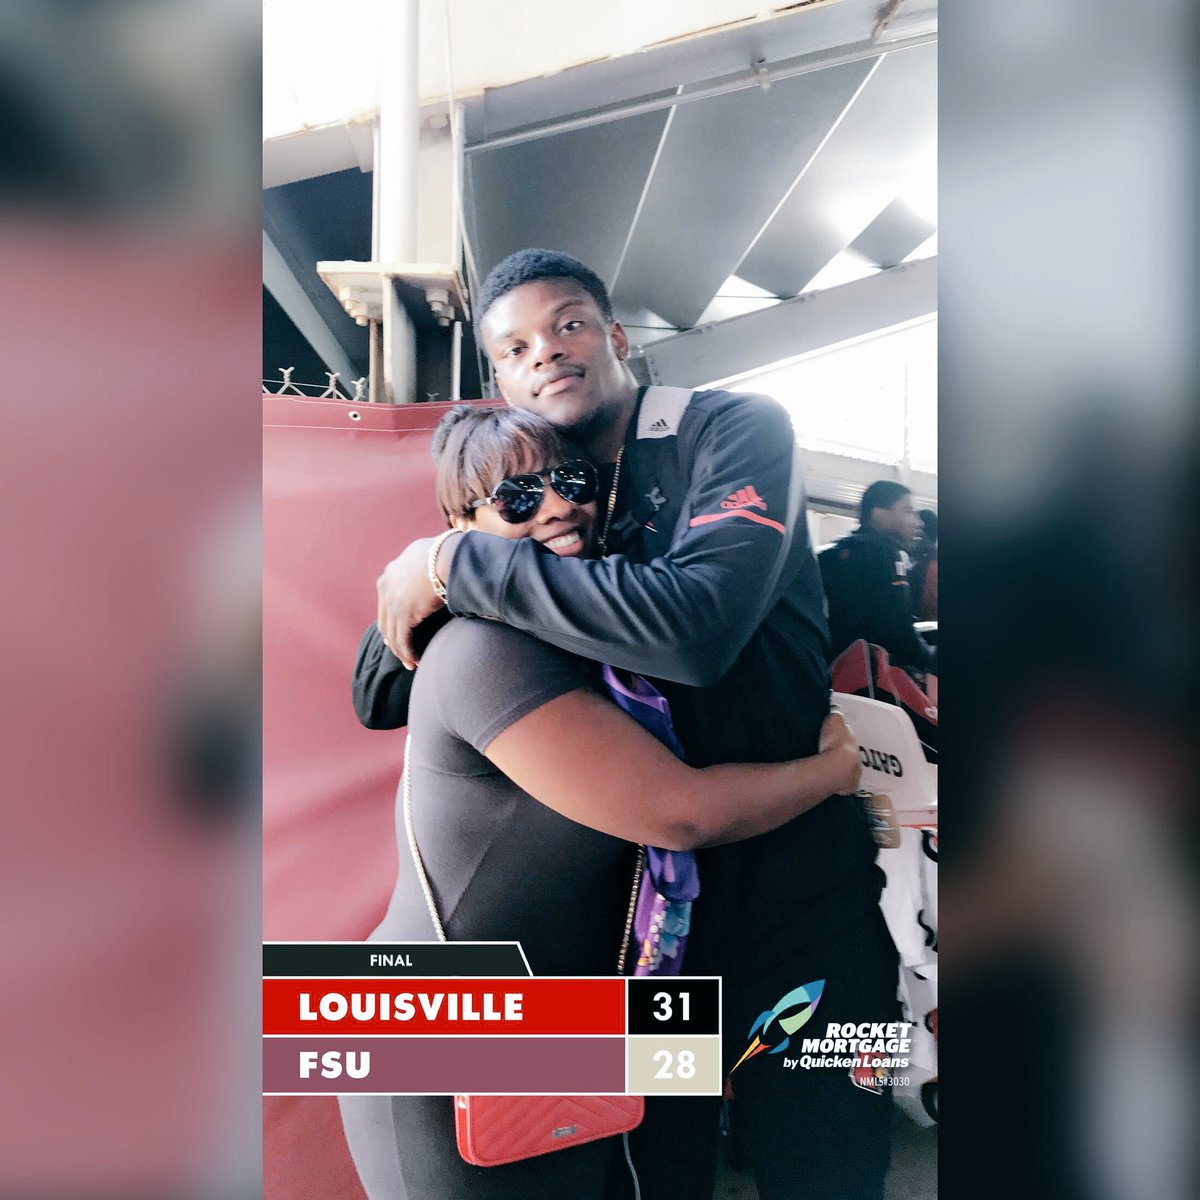 Lamar Jackson On Twitter A Mother And Son Bond No Man Can Break